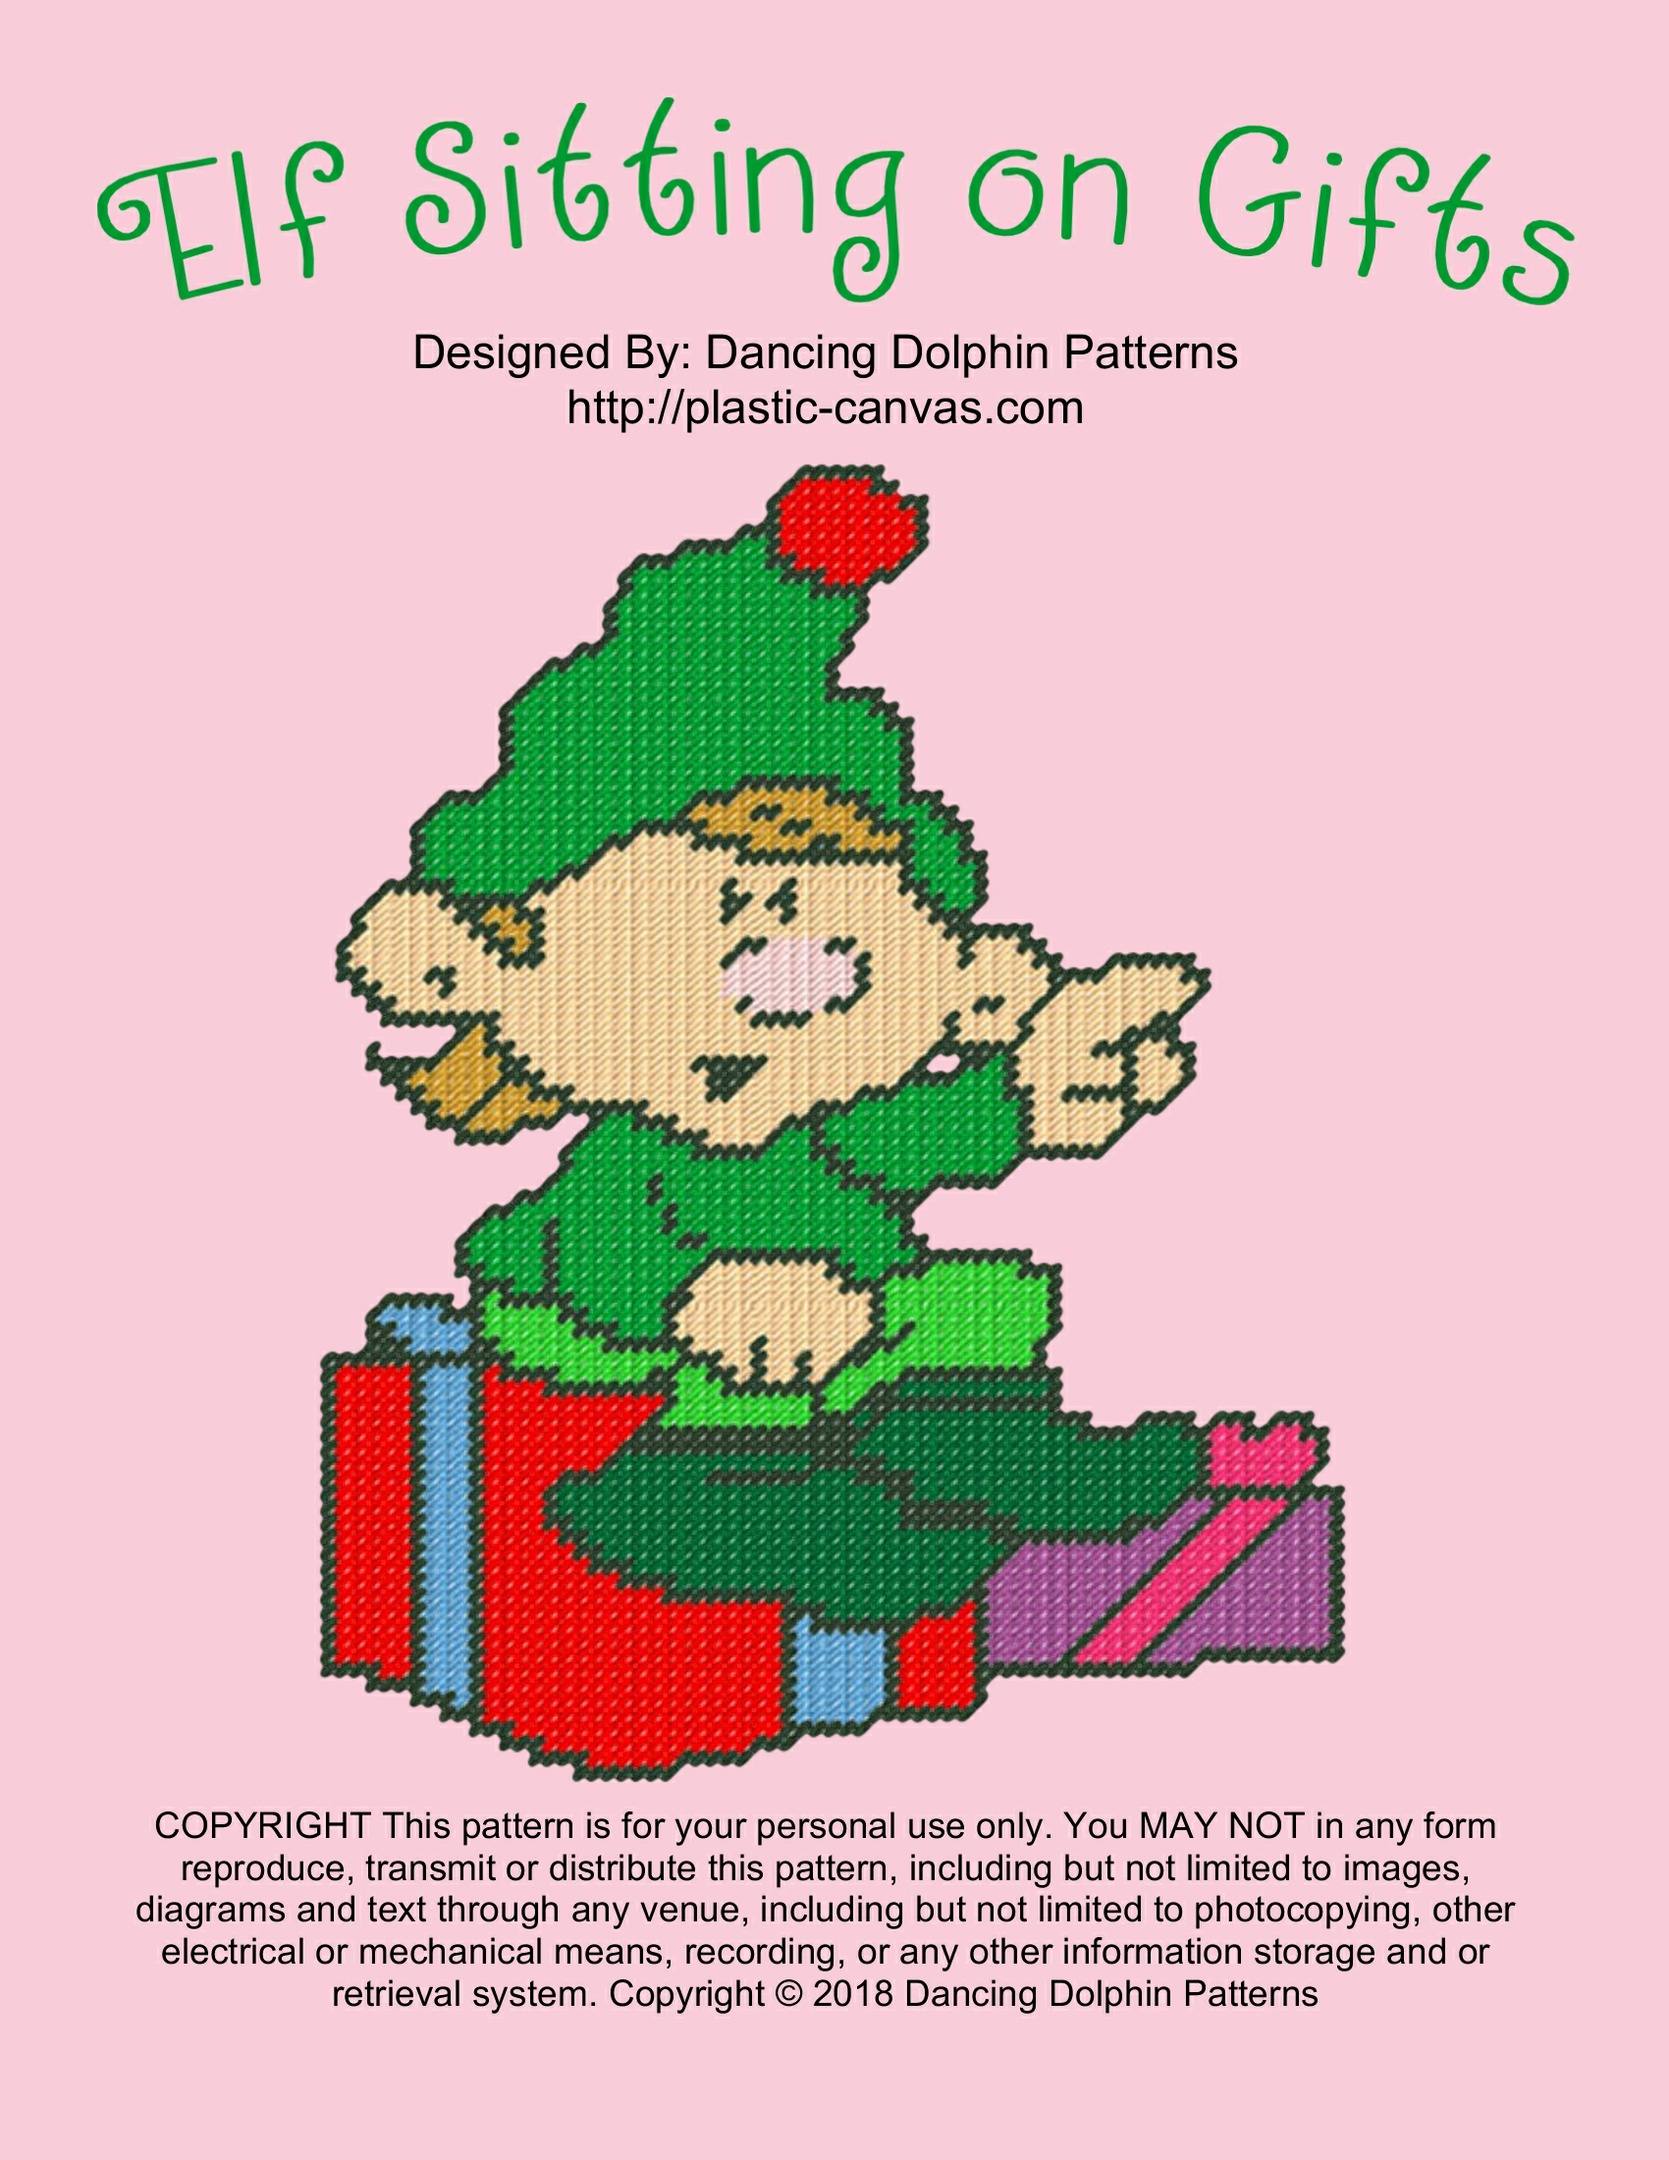 613 - Elf Sitting on Gifts